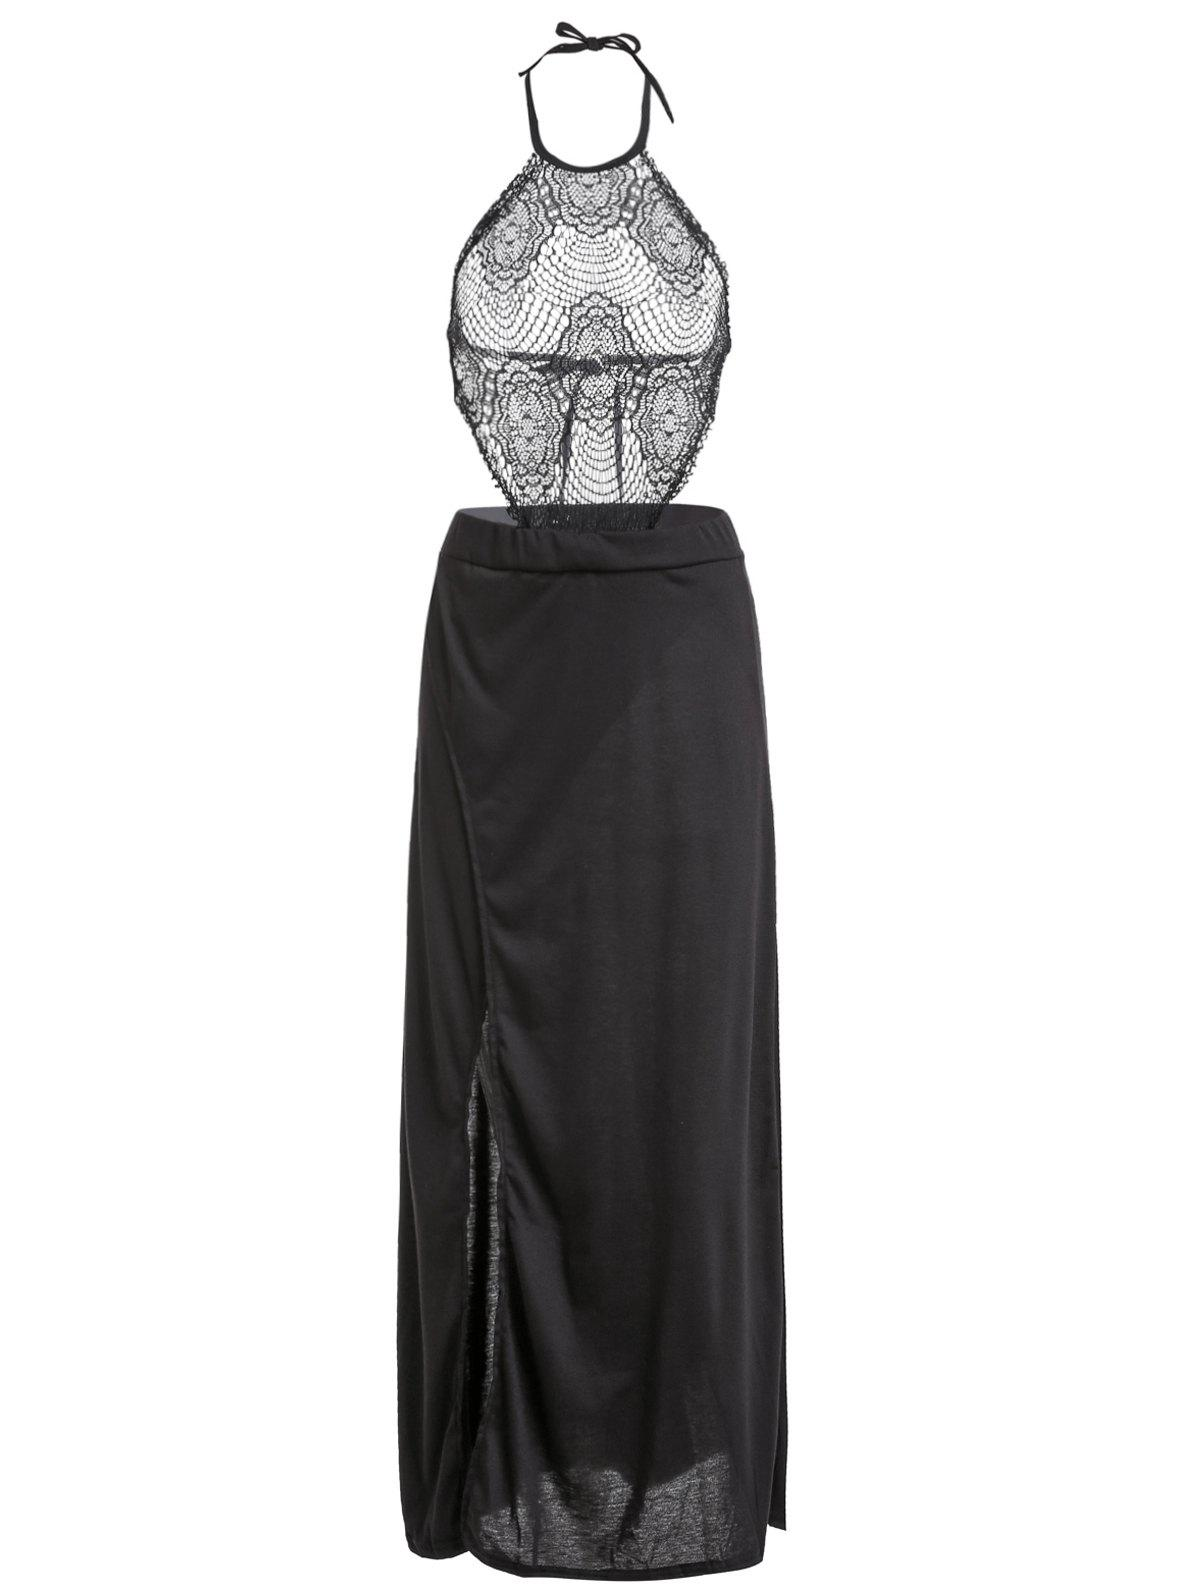 Sexy Women's Halter Hollow Out Lace Spliced High Slit Dress - BLACK S